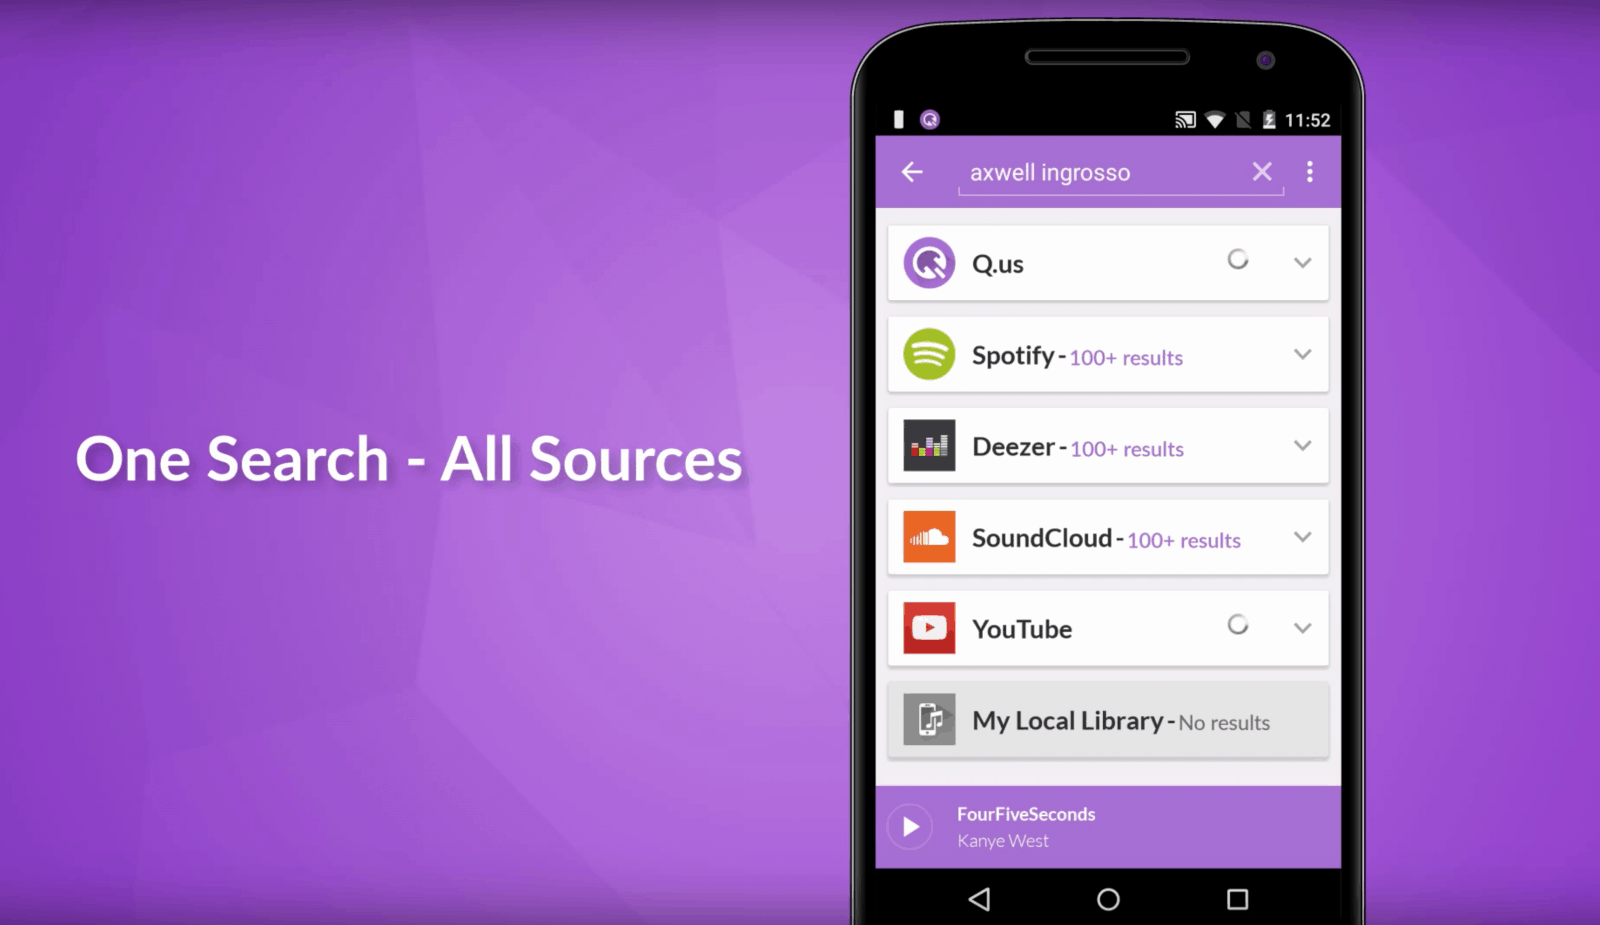 Qus searches multiple sources simultaneously - Photo: Google Play Store